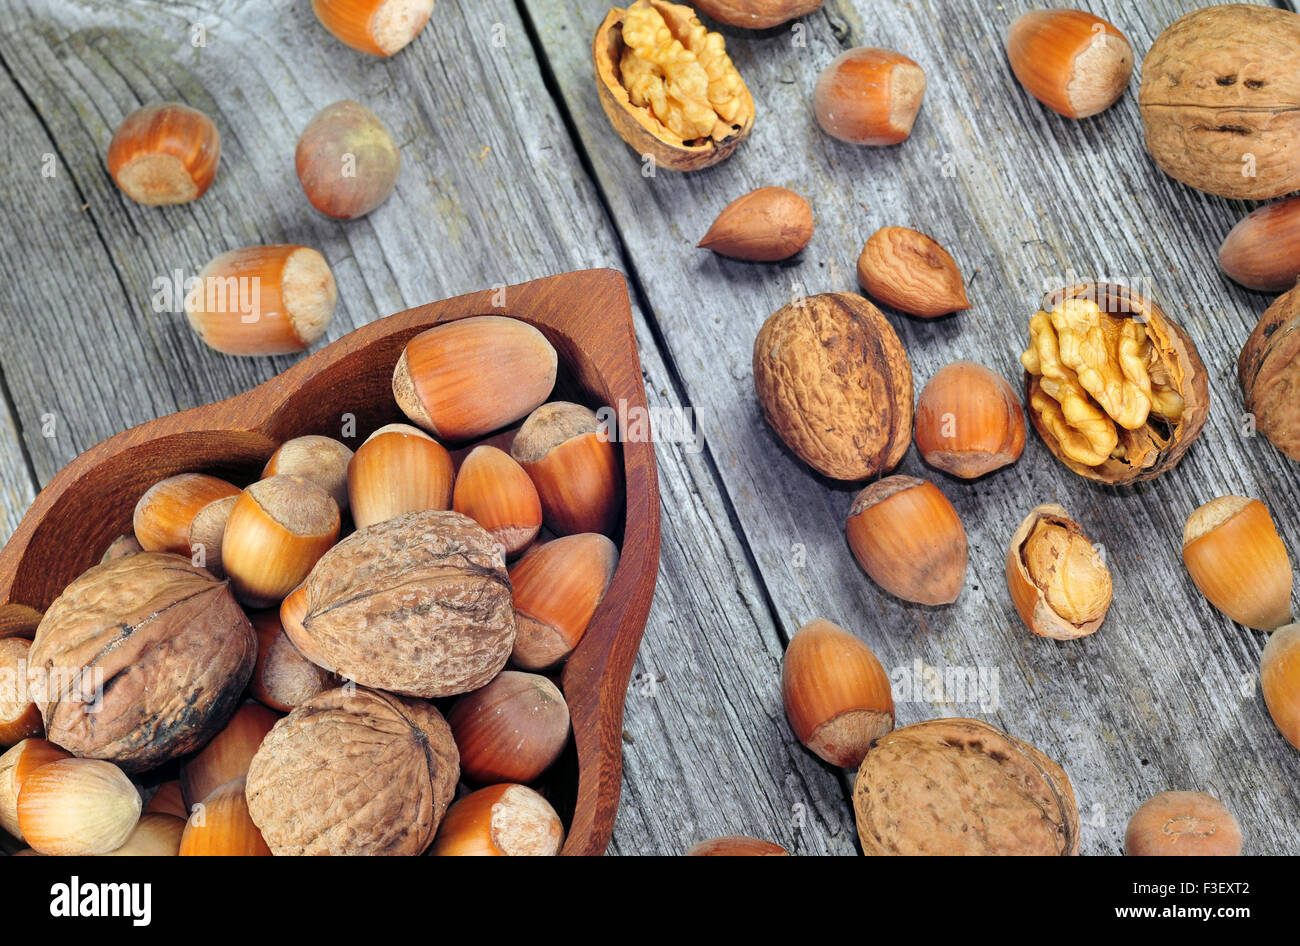 Hazelnuts and walnuts on a wooden table Stock Photo